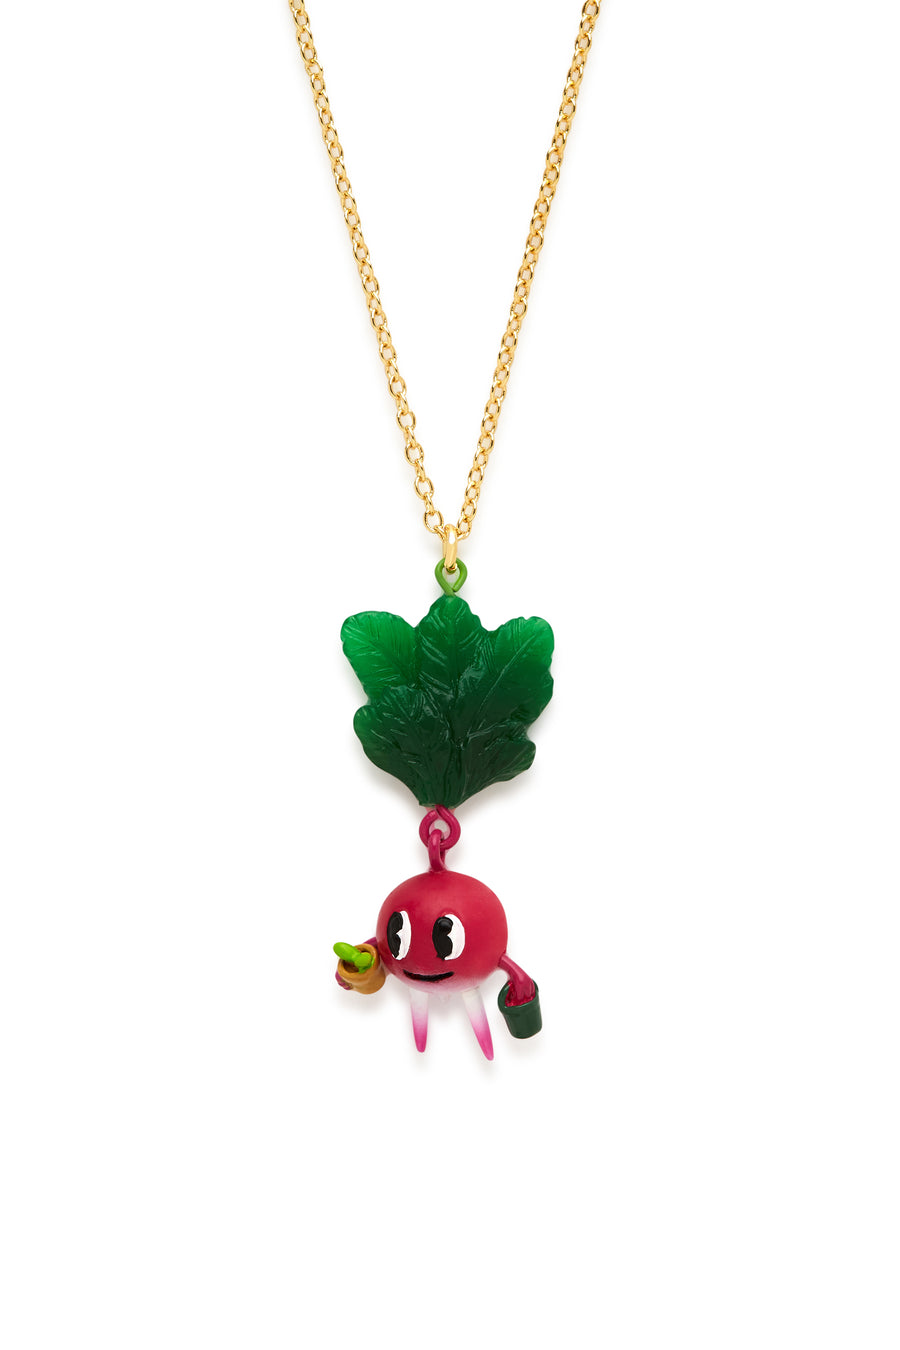 Turnip Necklace